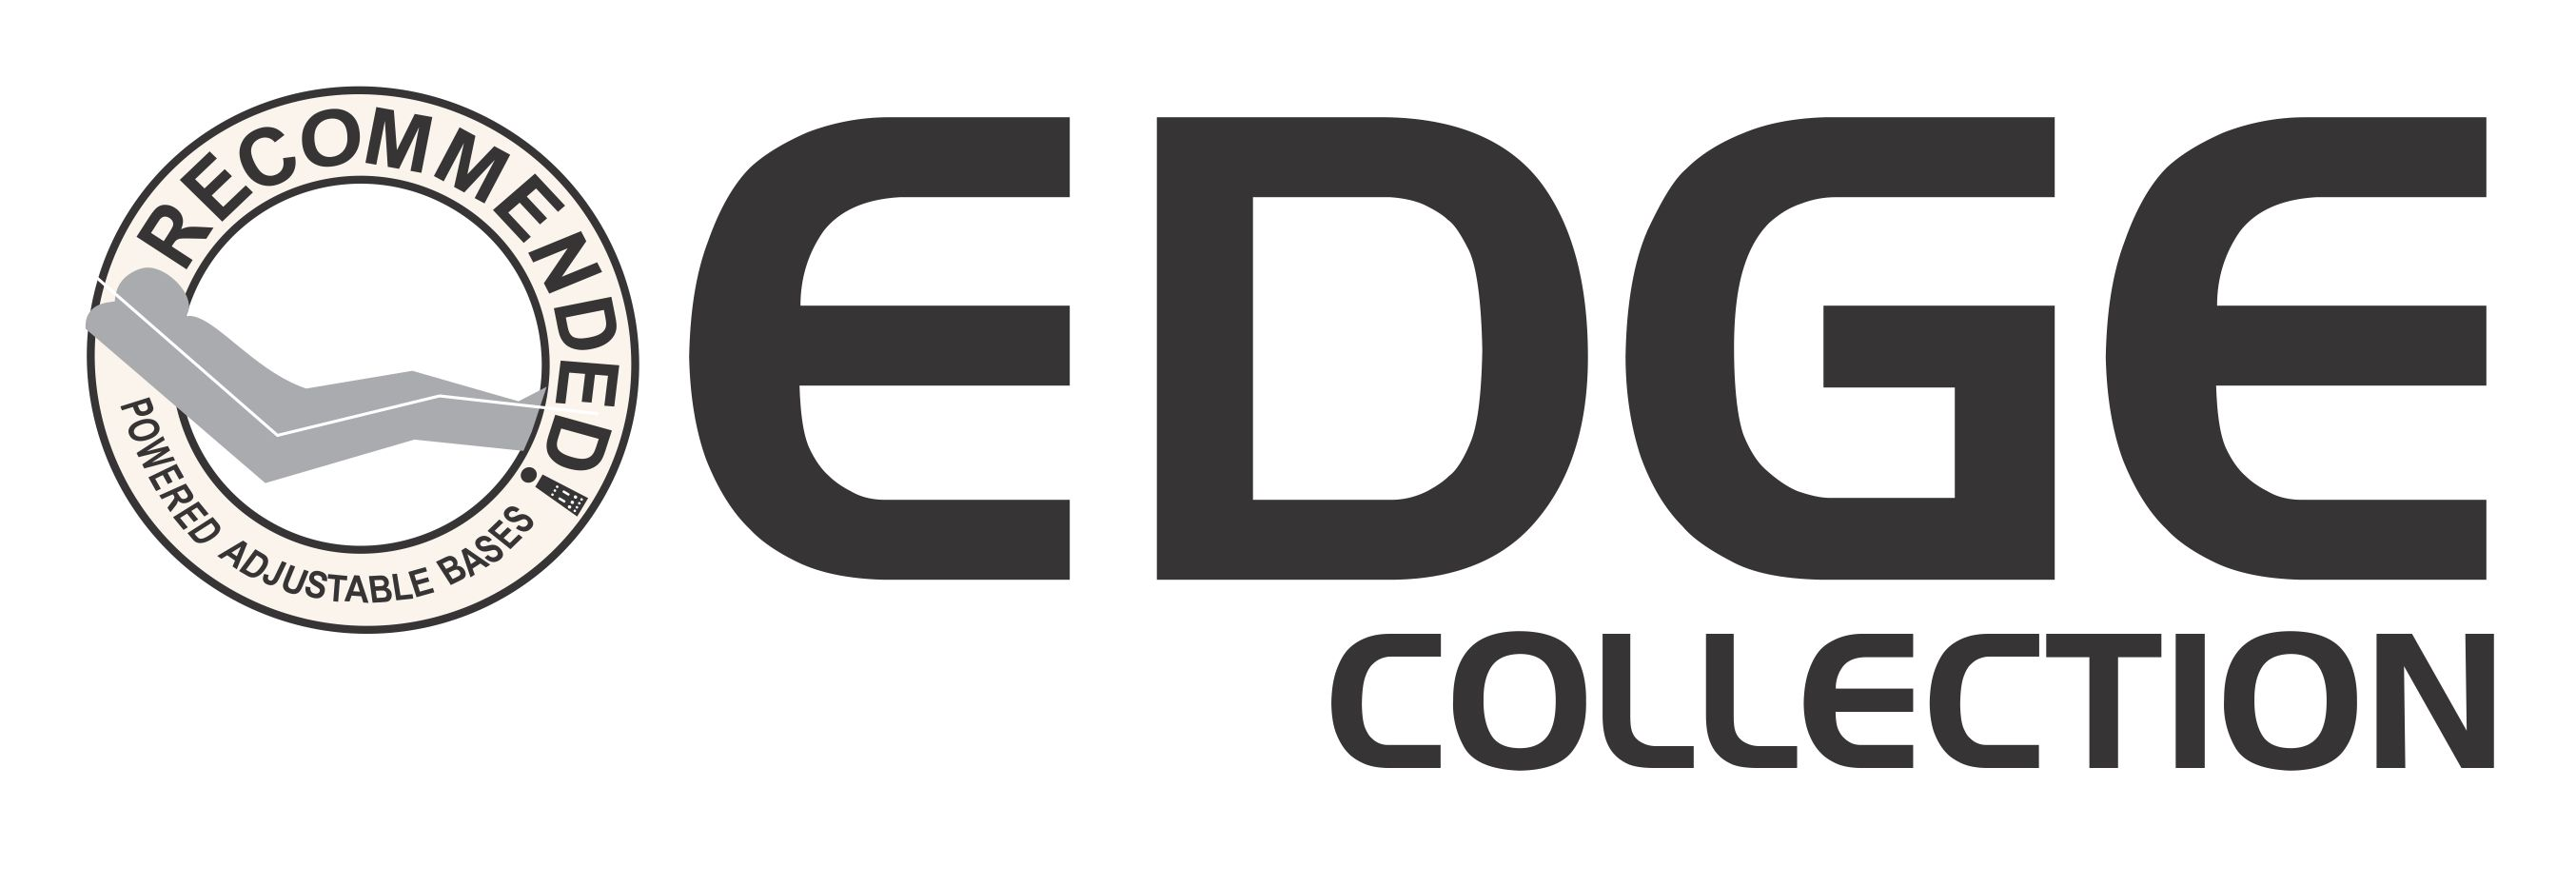 Edge Collection Logo